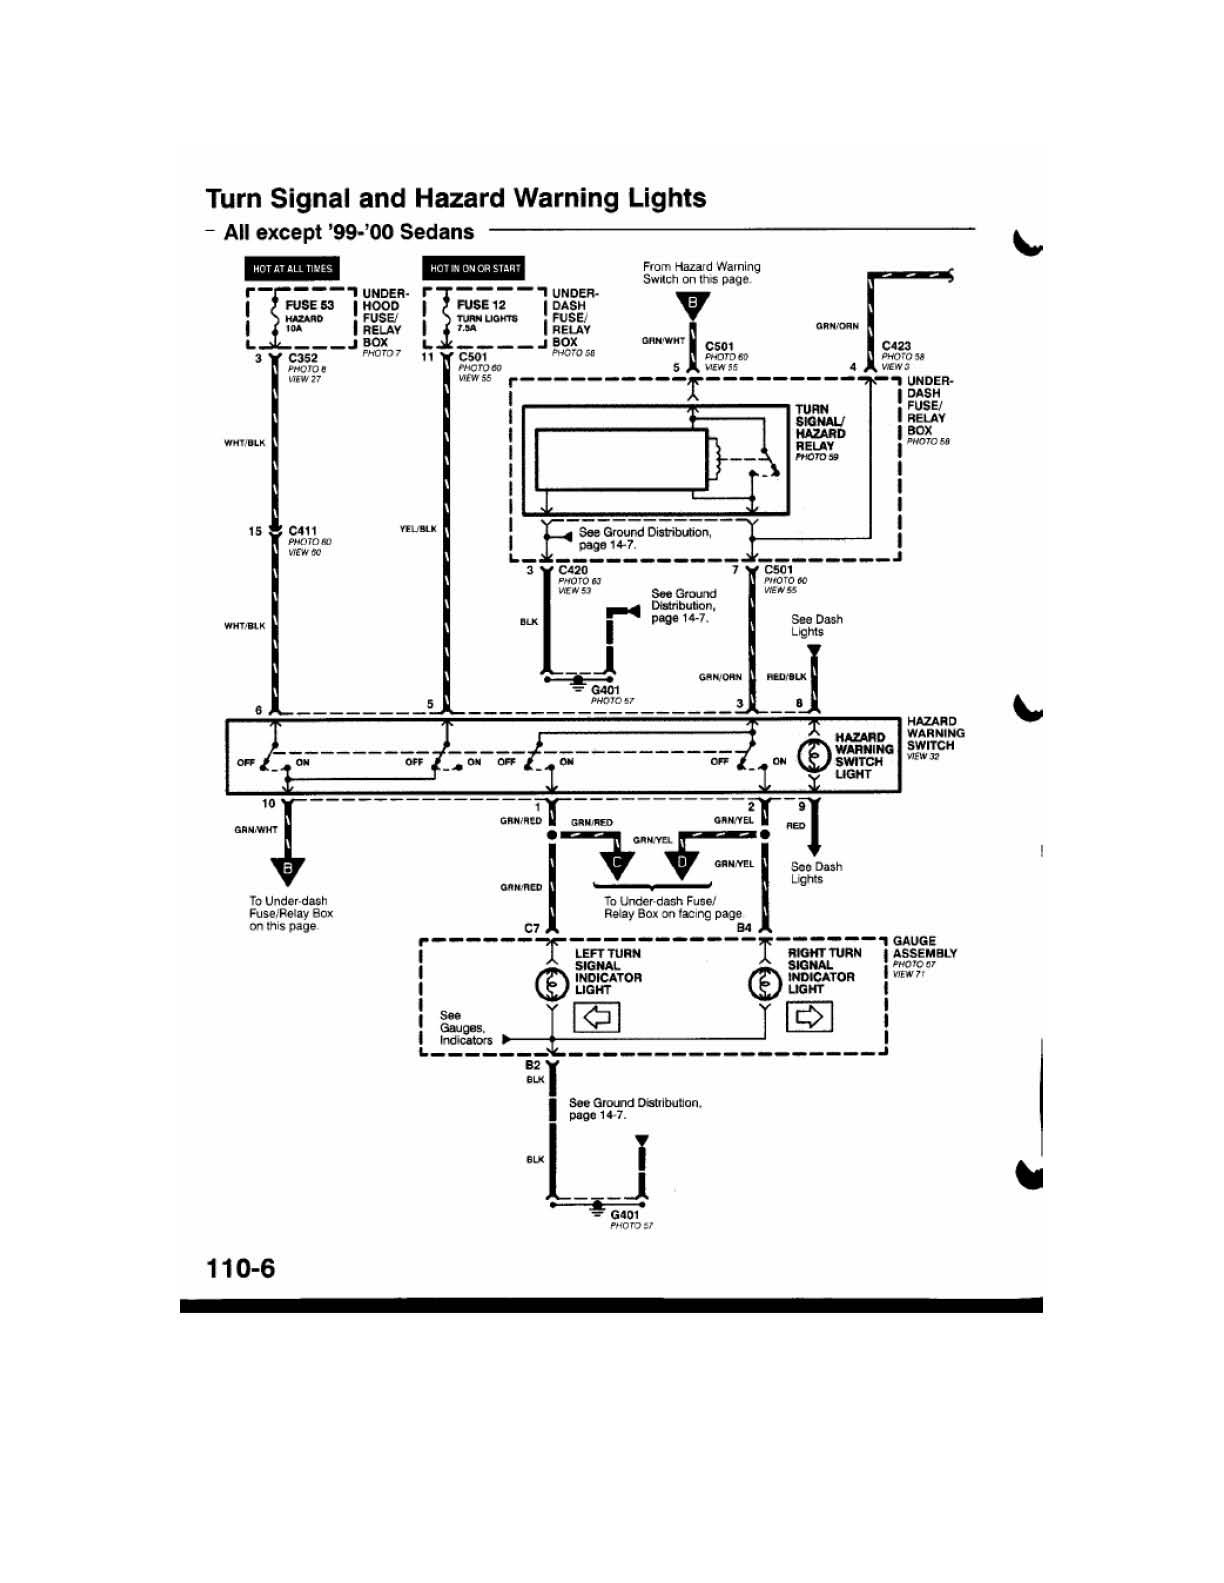 hight resolution of wiring 110 series wiring diagram centreturn signal wiring diagram needed d series org within 99 civicturn